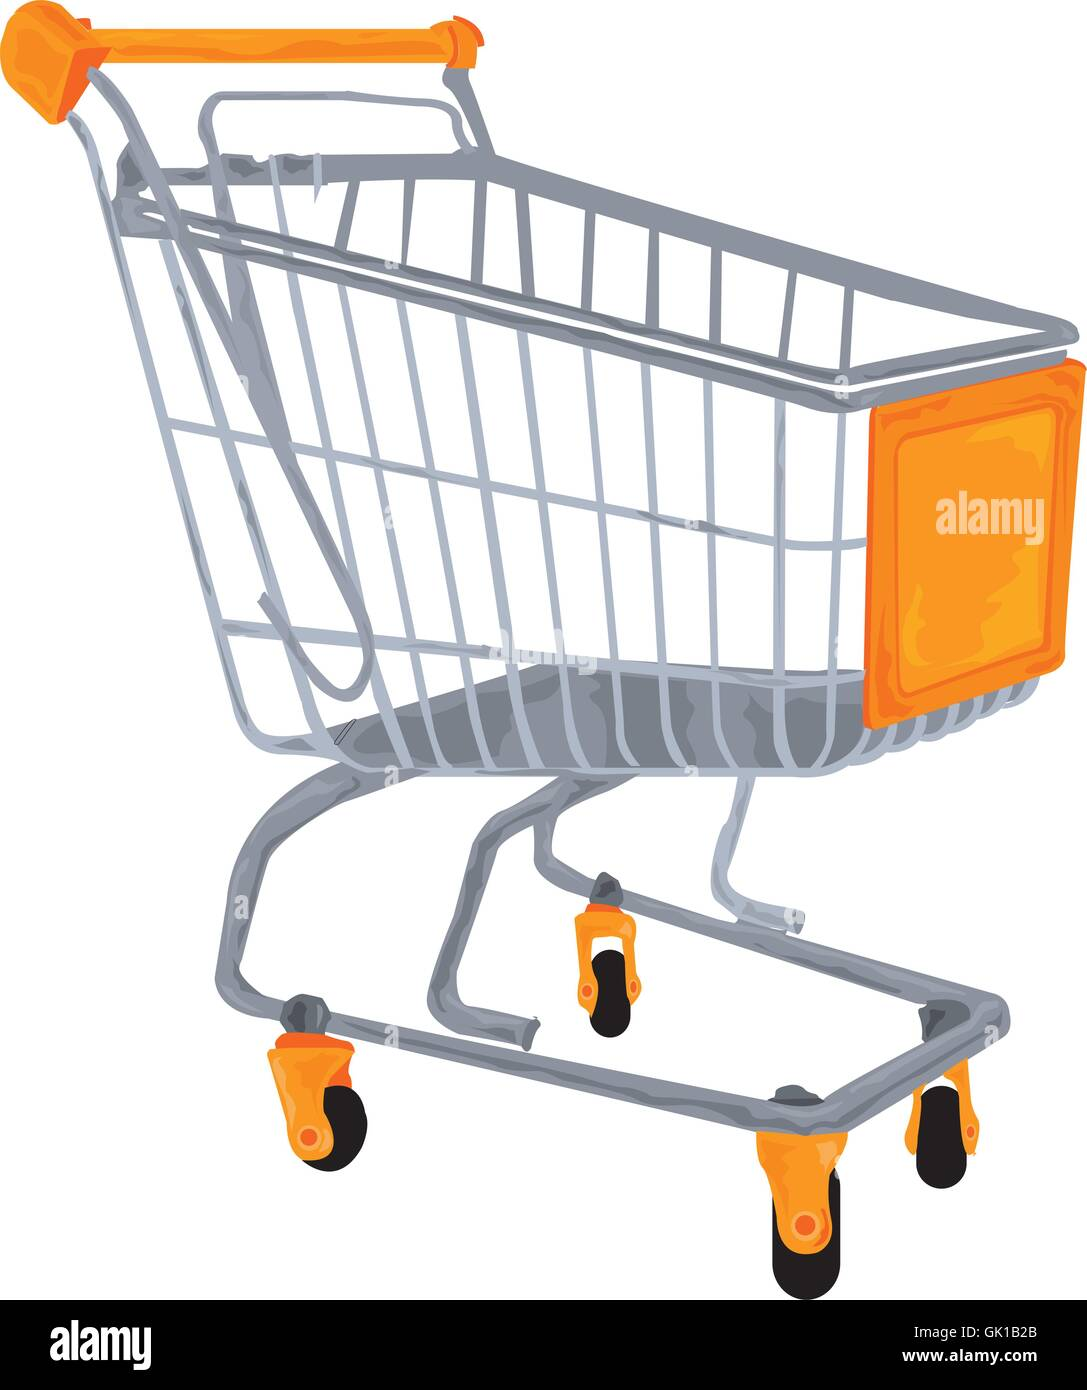 Shopping Cart - Stock Vector